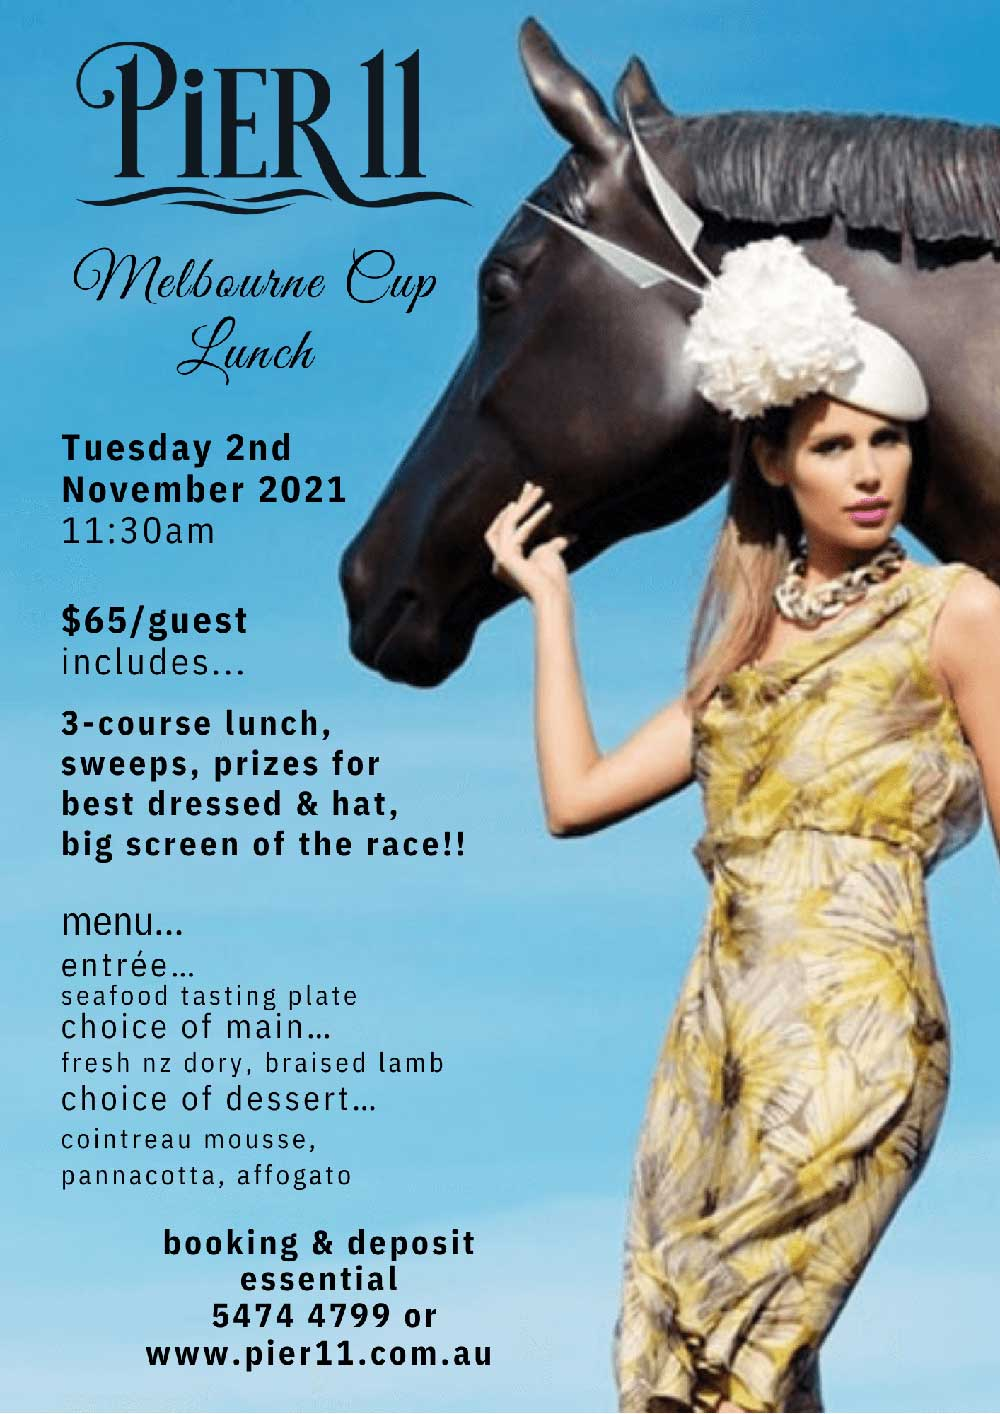 Flyer for Melbourne Cup 2021 lunch at Pier 11